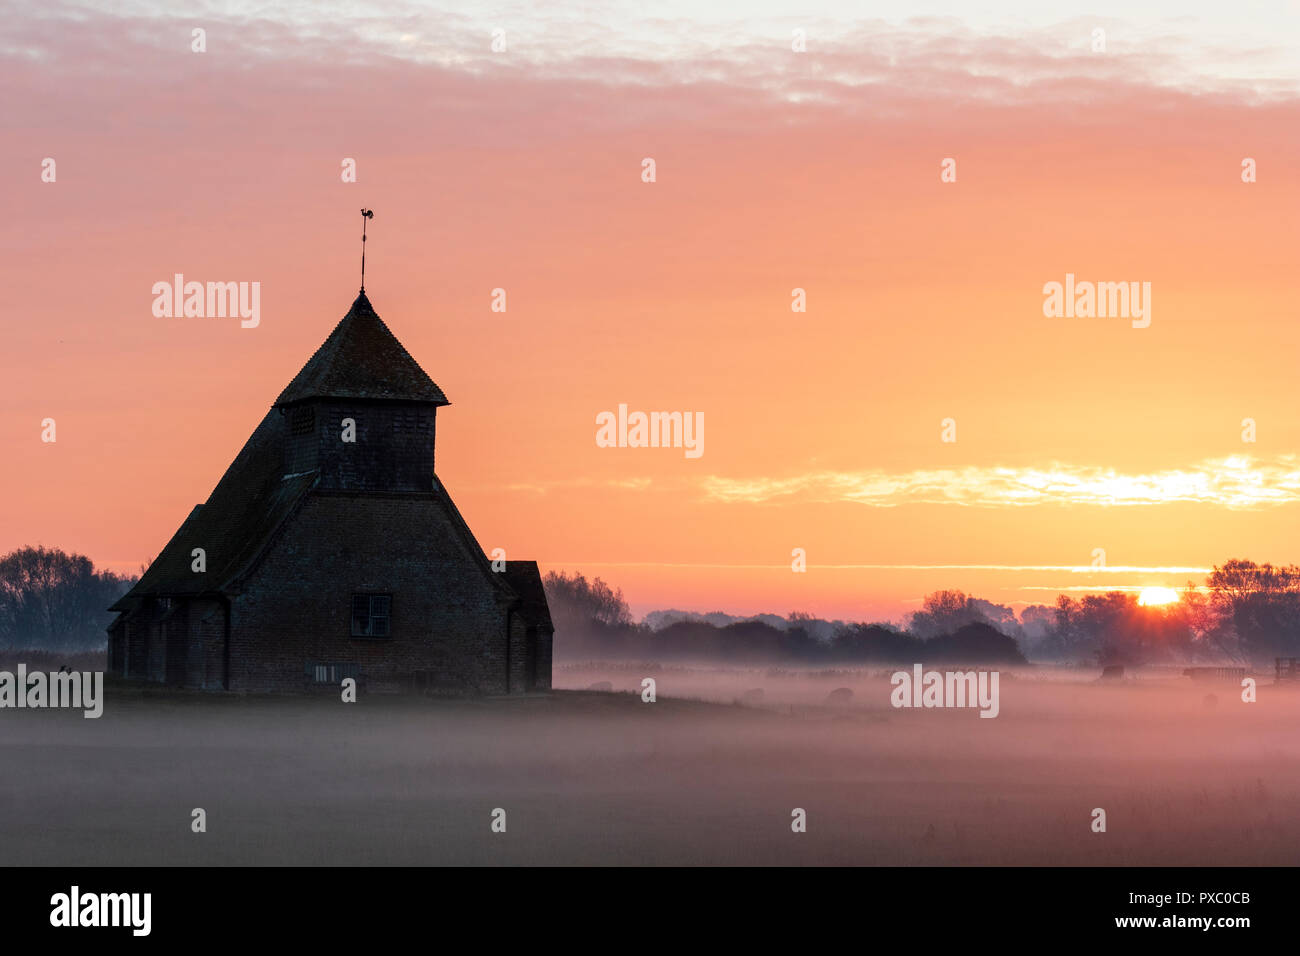 Sunrise and orange cloudy sky over the lonely Thomas a Becket church at Fairfield on Romney Marsh. Fields covered in mist, laying the landscape. Some sheep and cows in the mist. Stock Photo